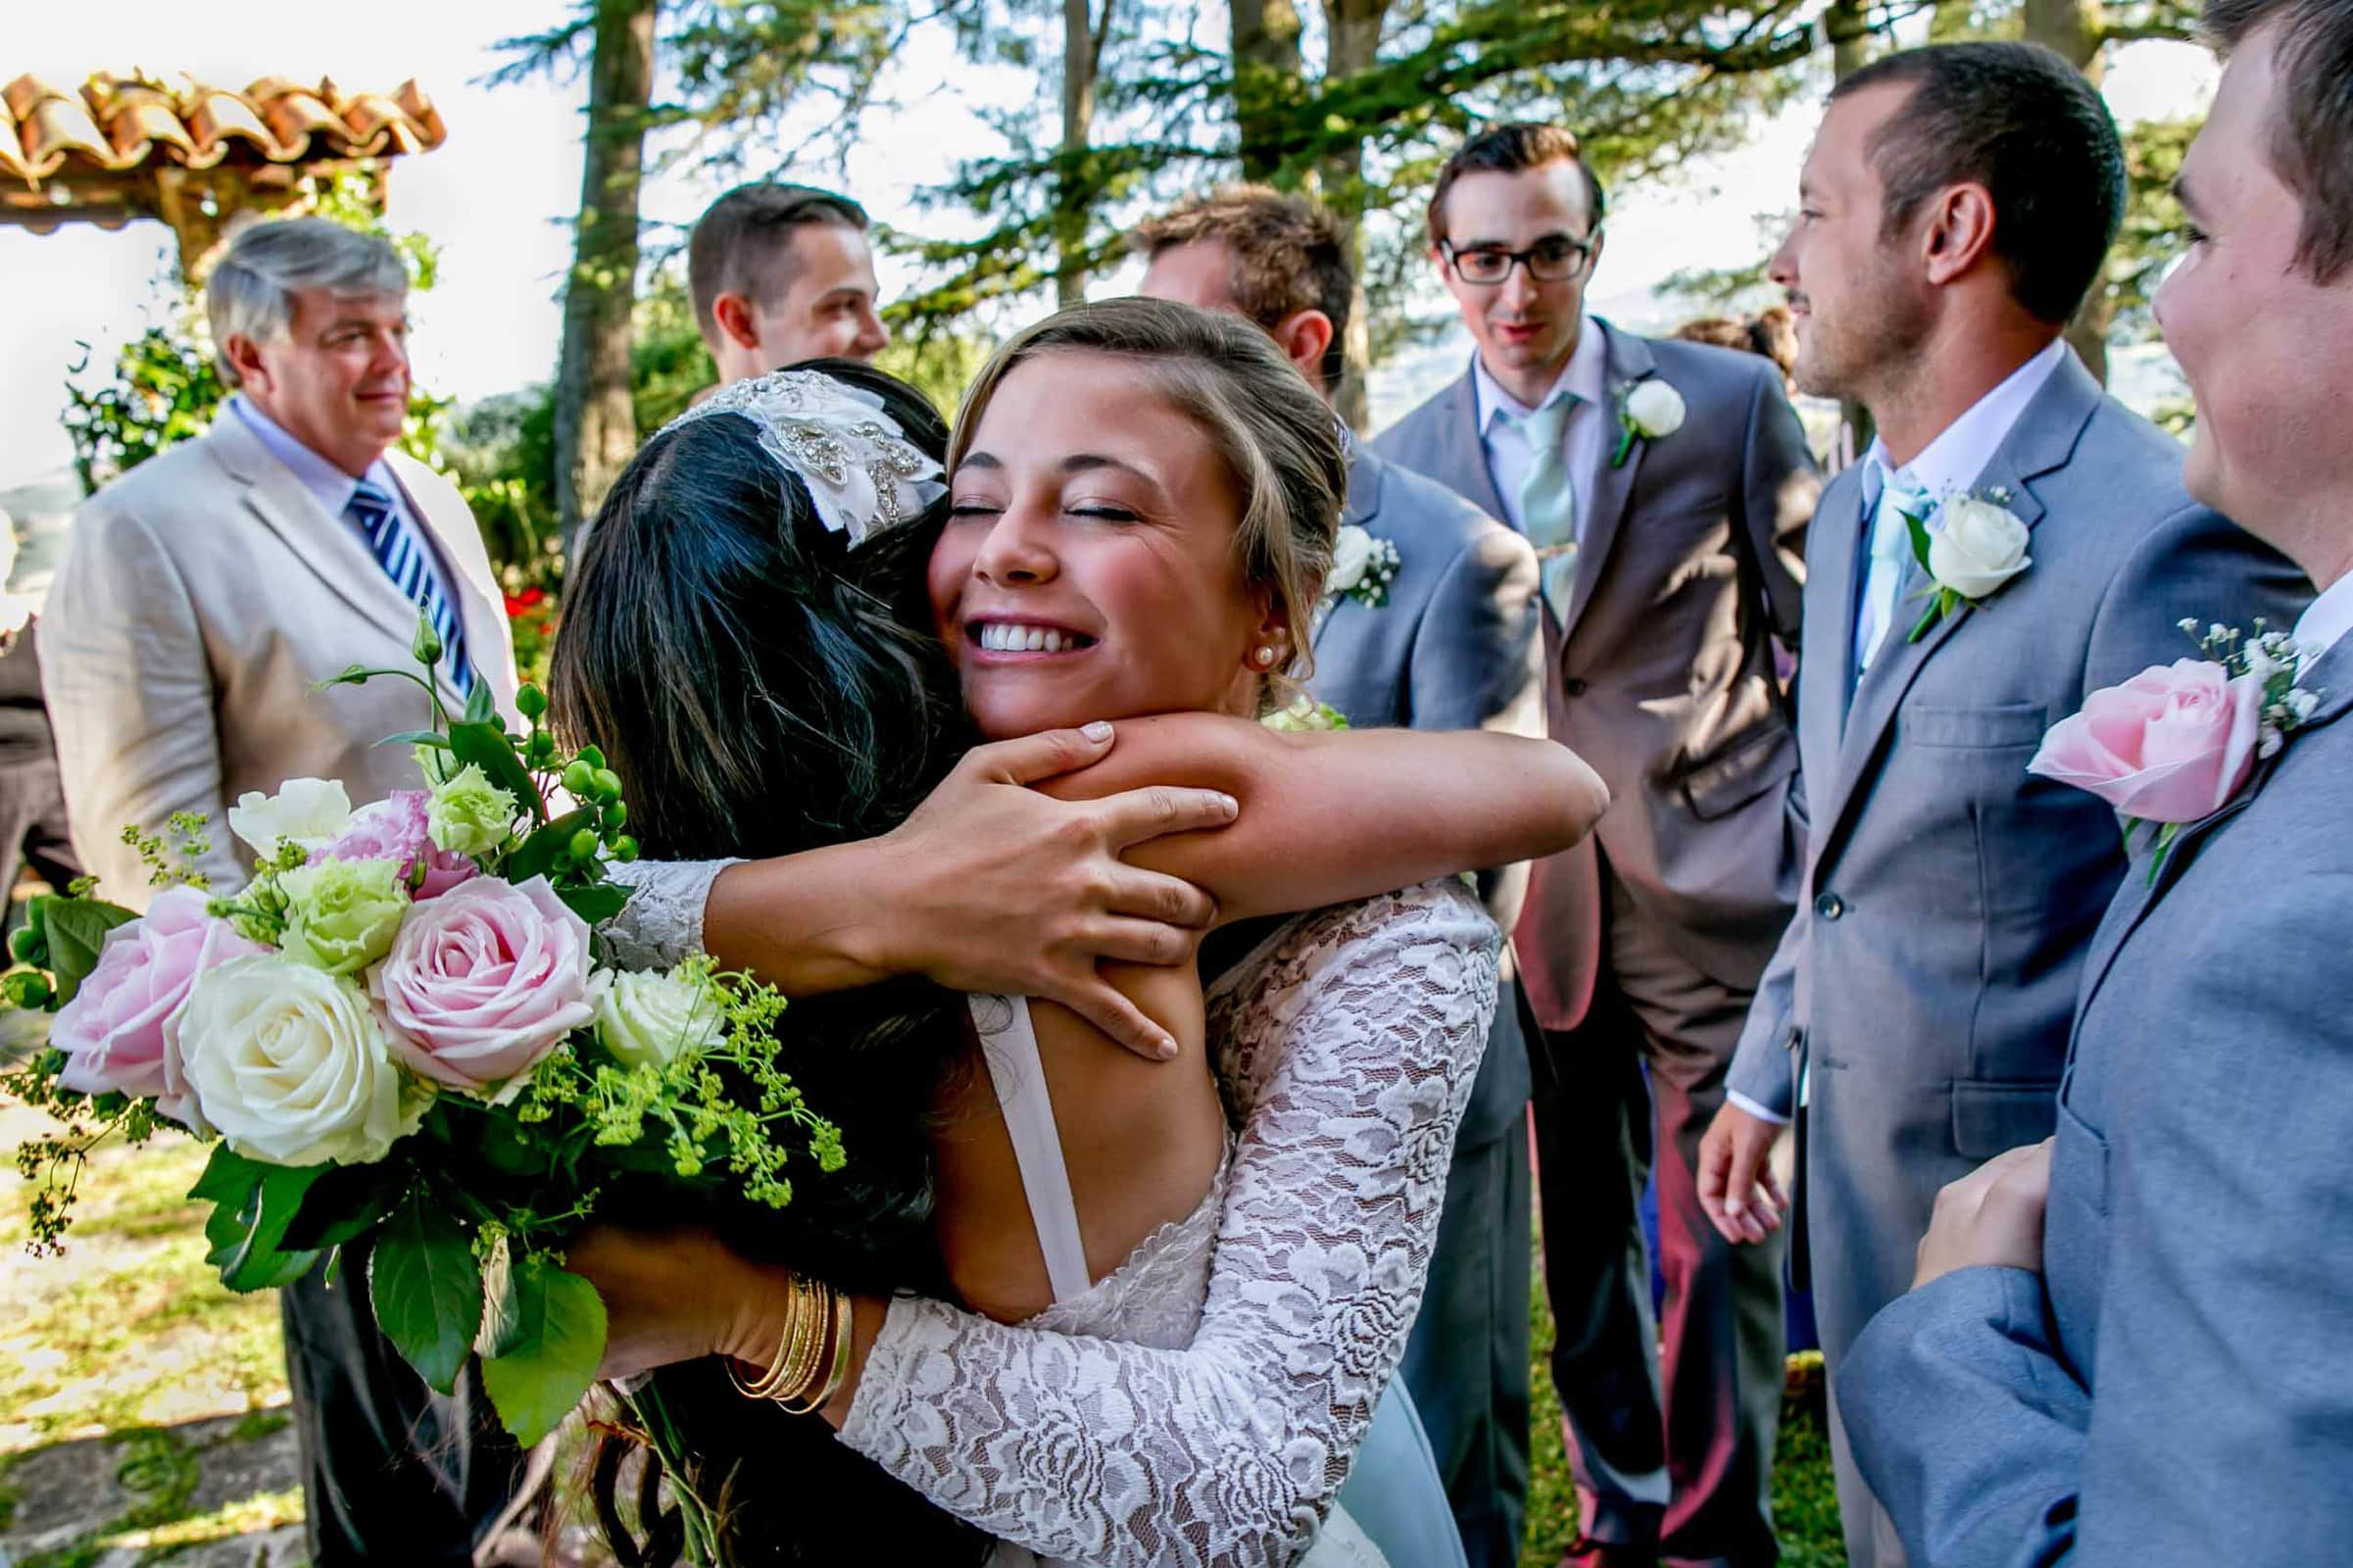 Bride hugging her best friend moments after her Villa Tre Grazie wedding ceremony near Todi, Italy in Umbria.